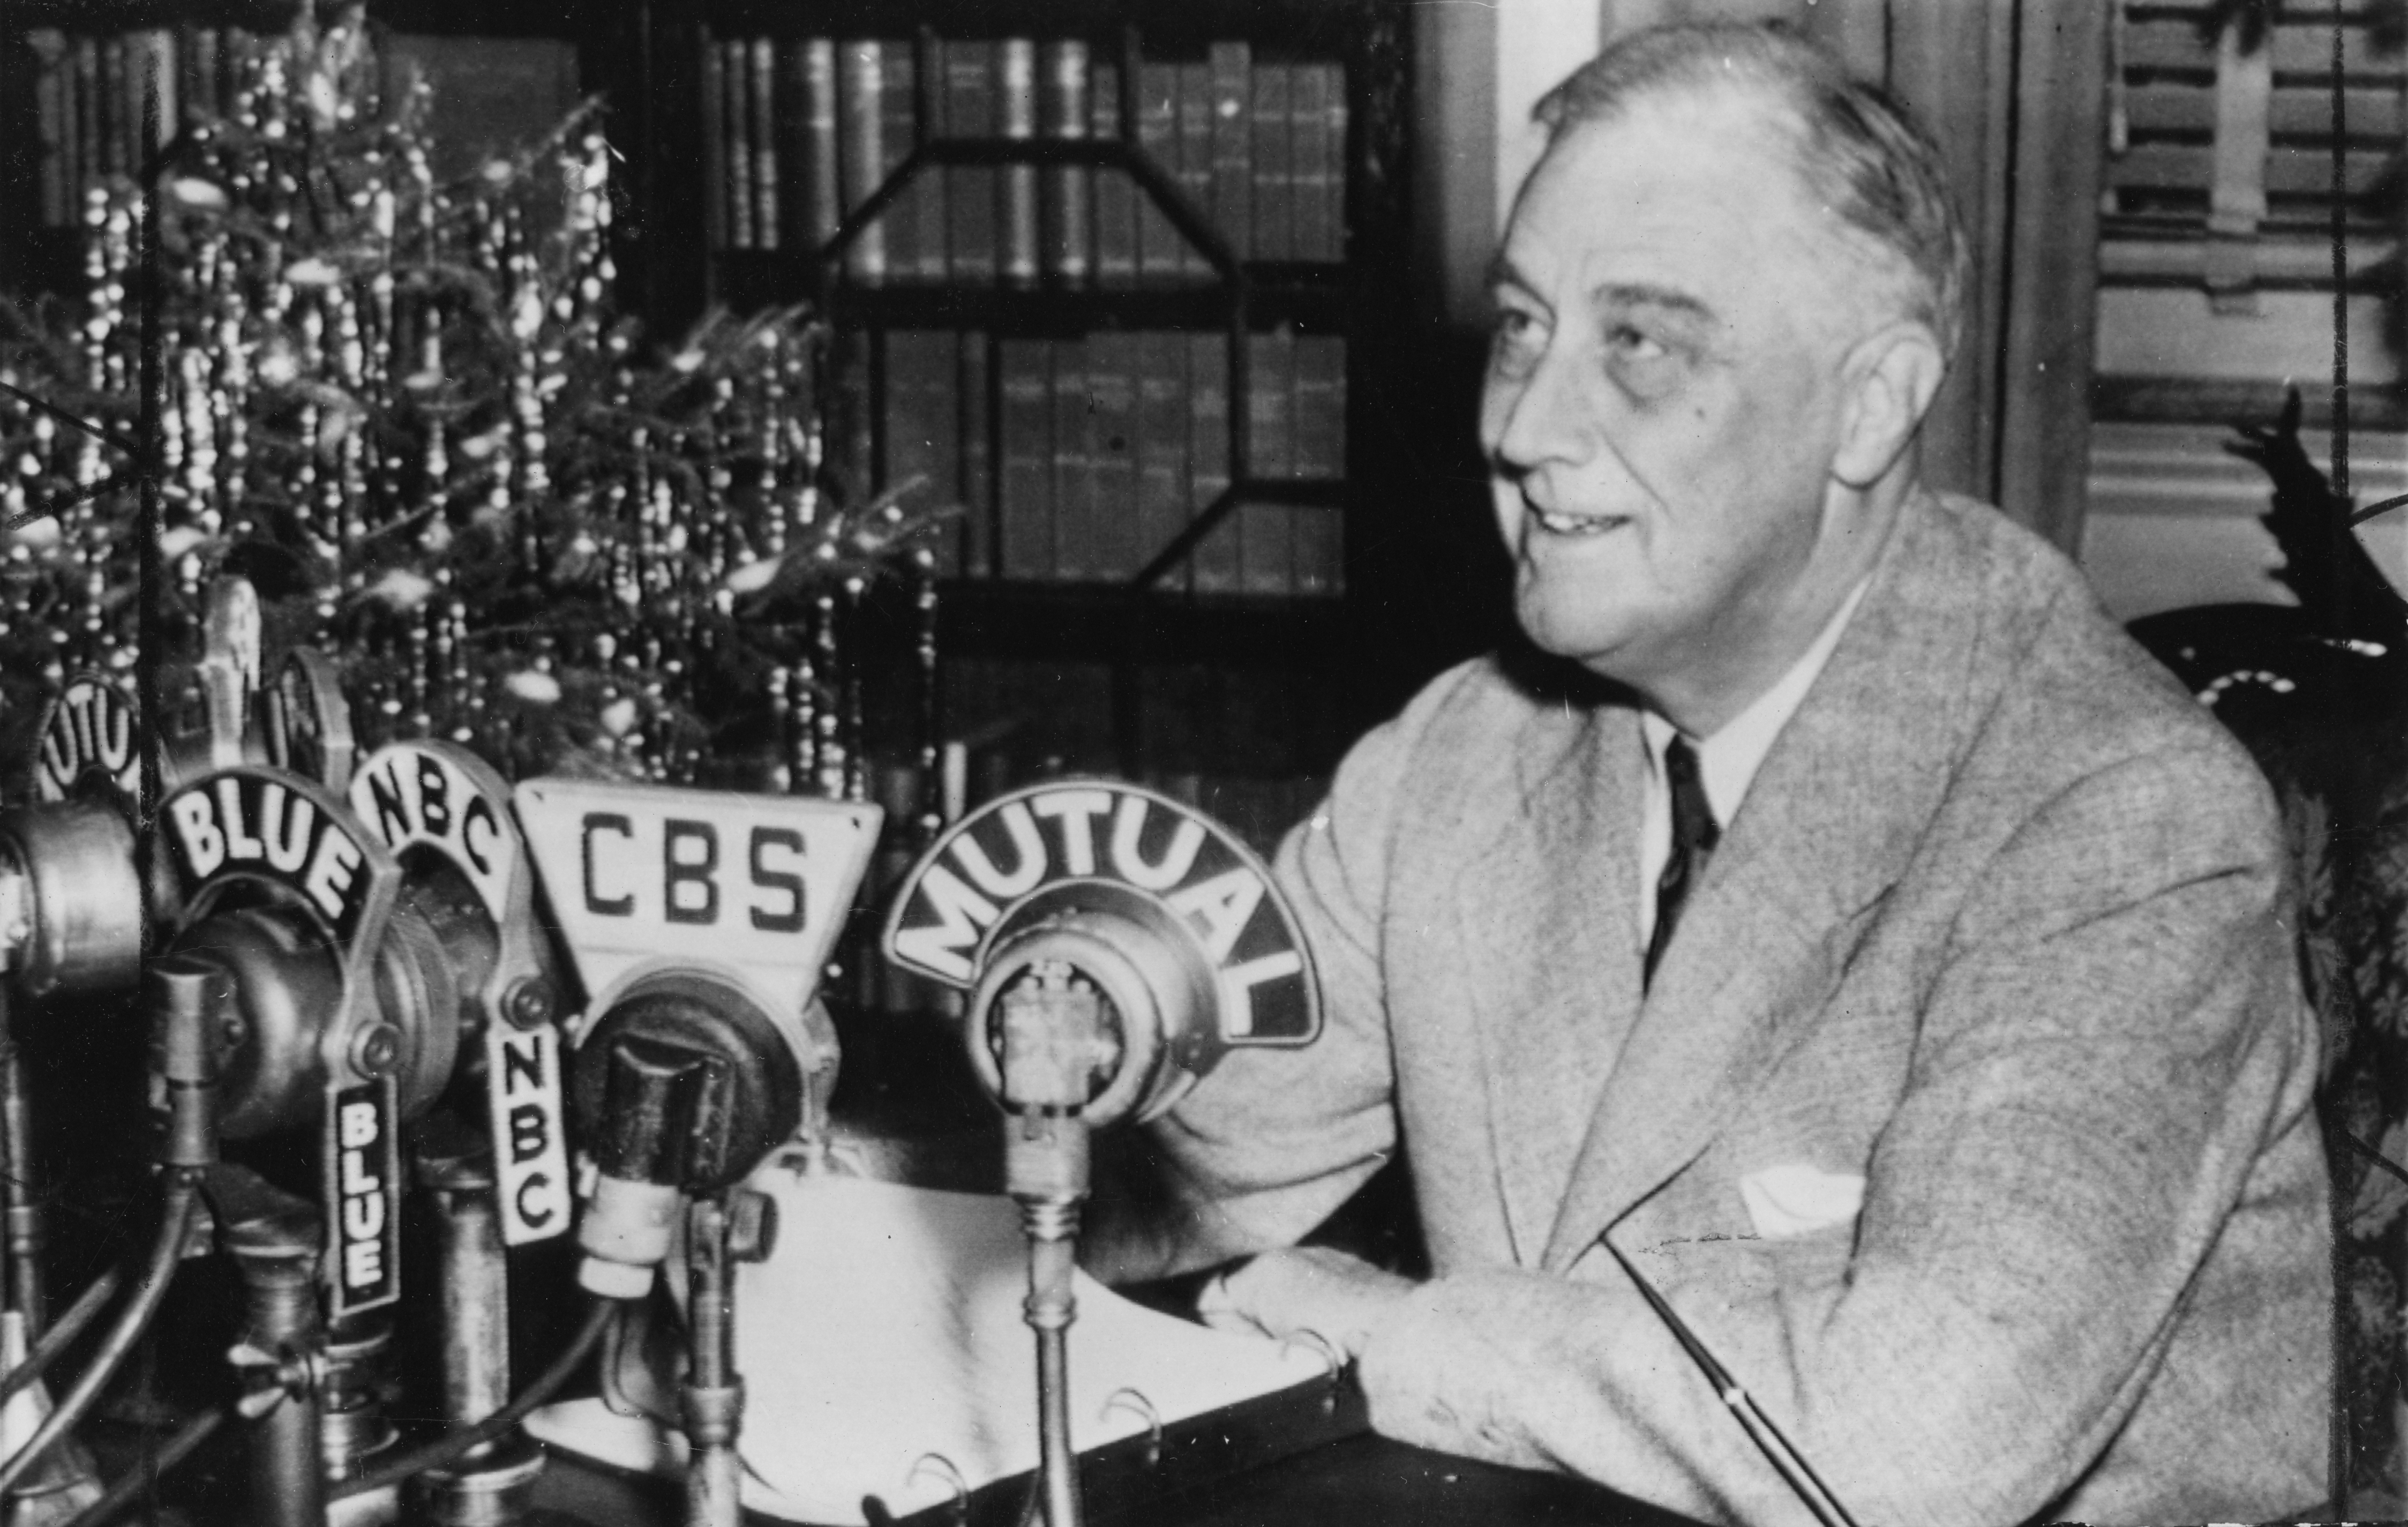 FDR broadcasts Christmas message announcing Dwight D. Eisenhower as Commander in Chief of Allied forces in Europe from his study in the Library, Hyde Park, NY. December 24, 1943.